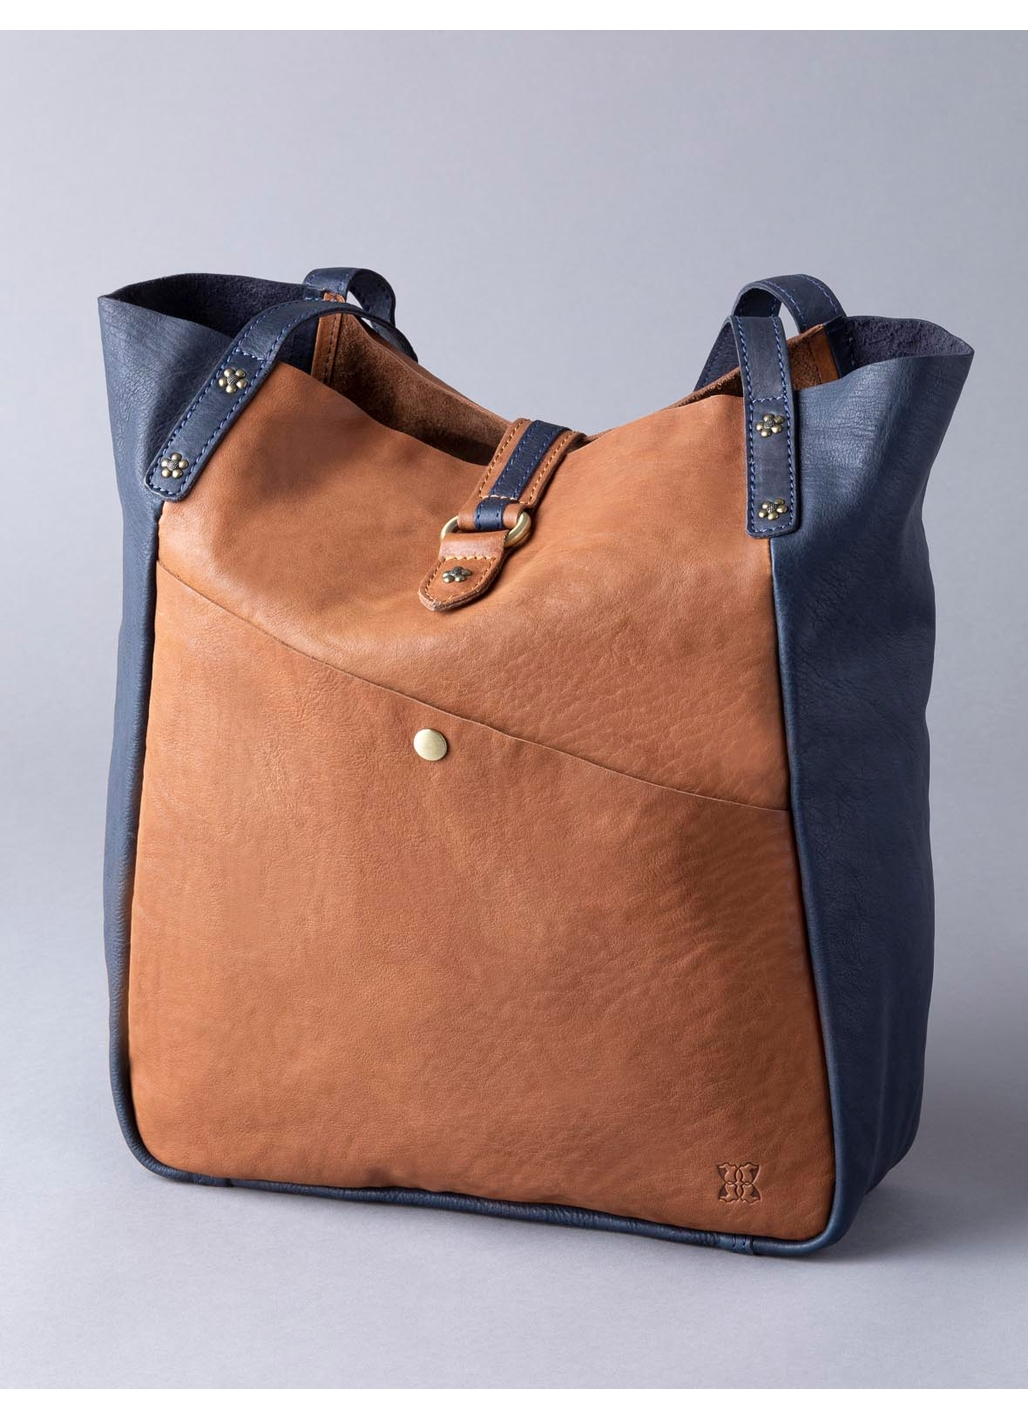 Hartsop Leather Tote Bag in Navy & Cognac